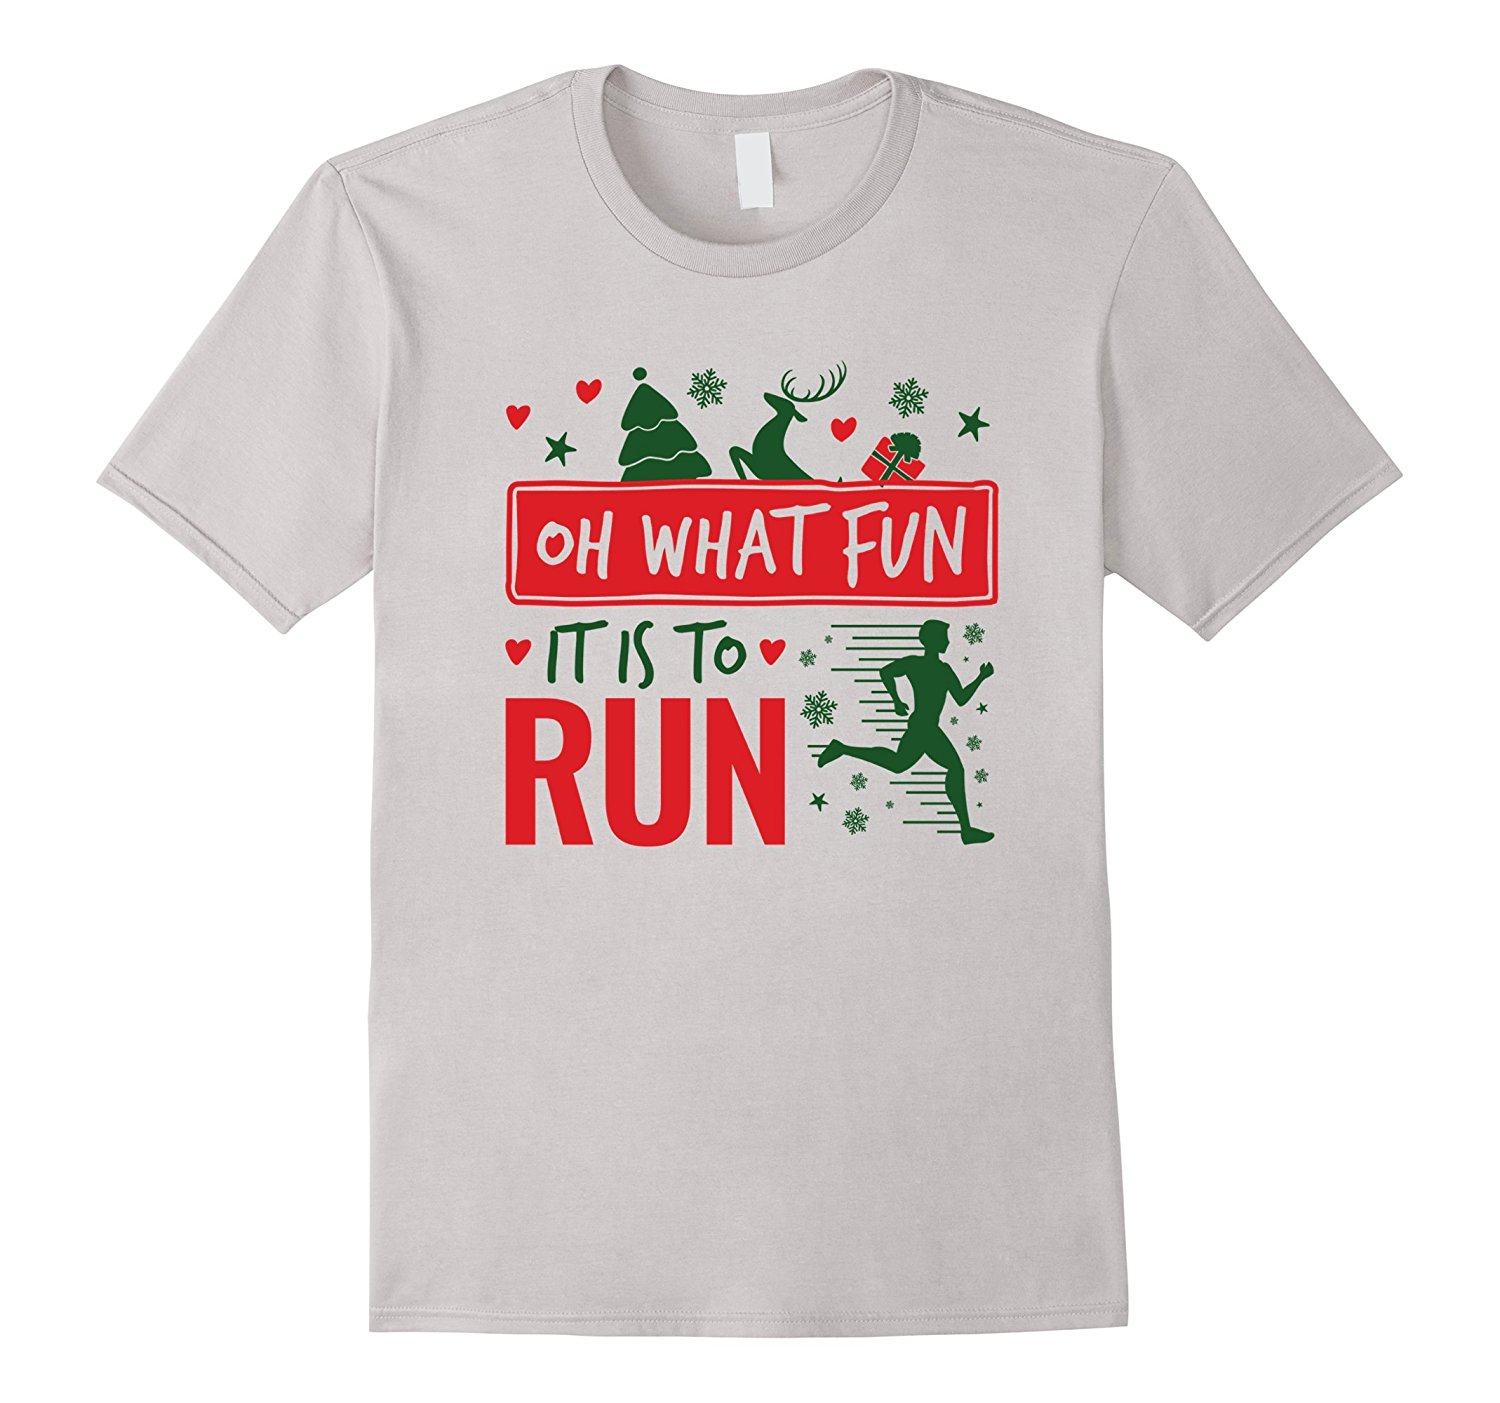 08372f37c Fun Run T Shirt Designs – EDGE Engineering and Consulting Limited